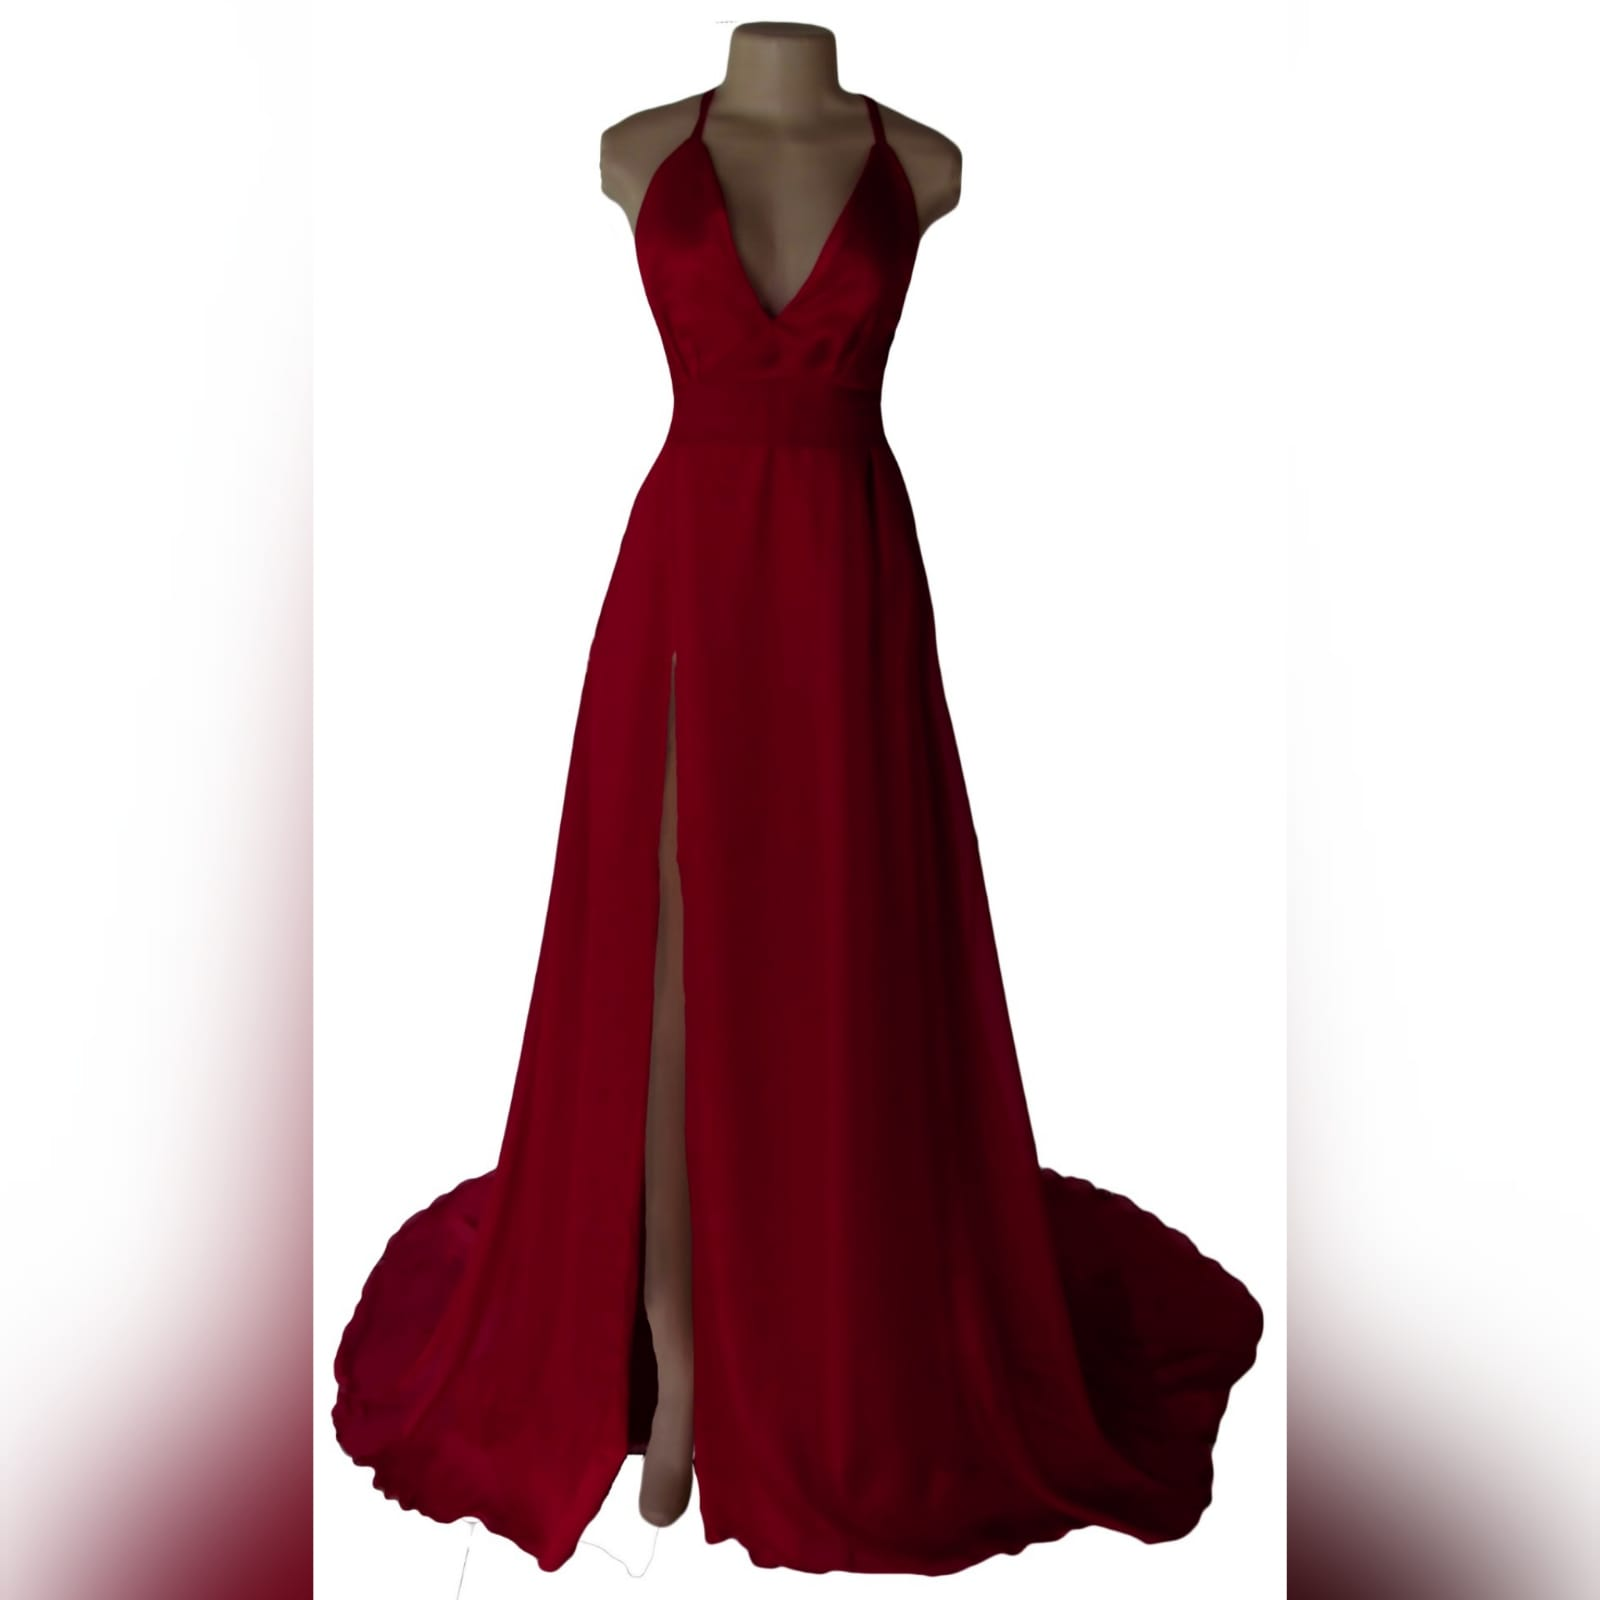 Long red flowy formal dress 1 long red flowy formal dress, with a low v neckline, low open back with crossed thin shoulder straps. Wide waist belt, high slit and a train. A design suitable for various occasions, made per measurements any colour you want.